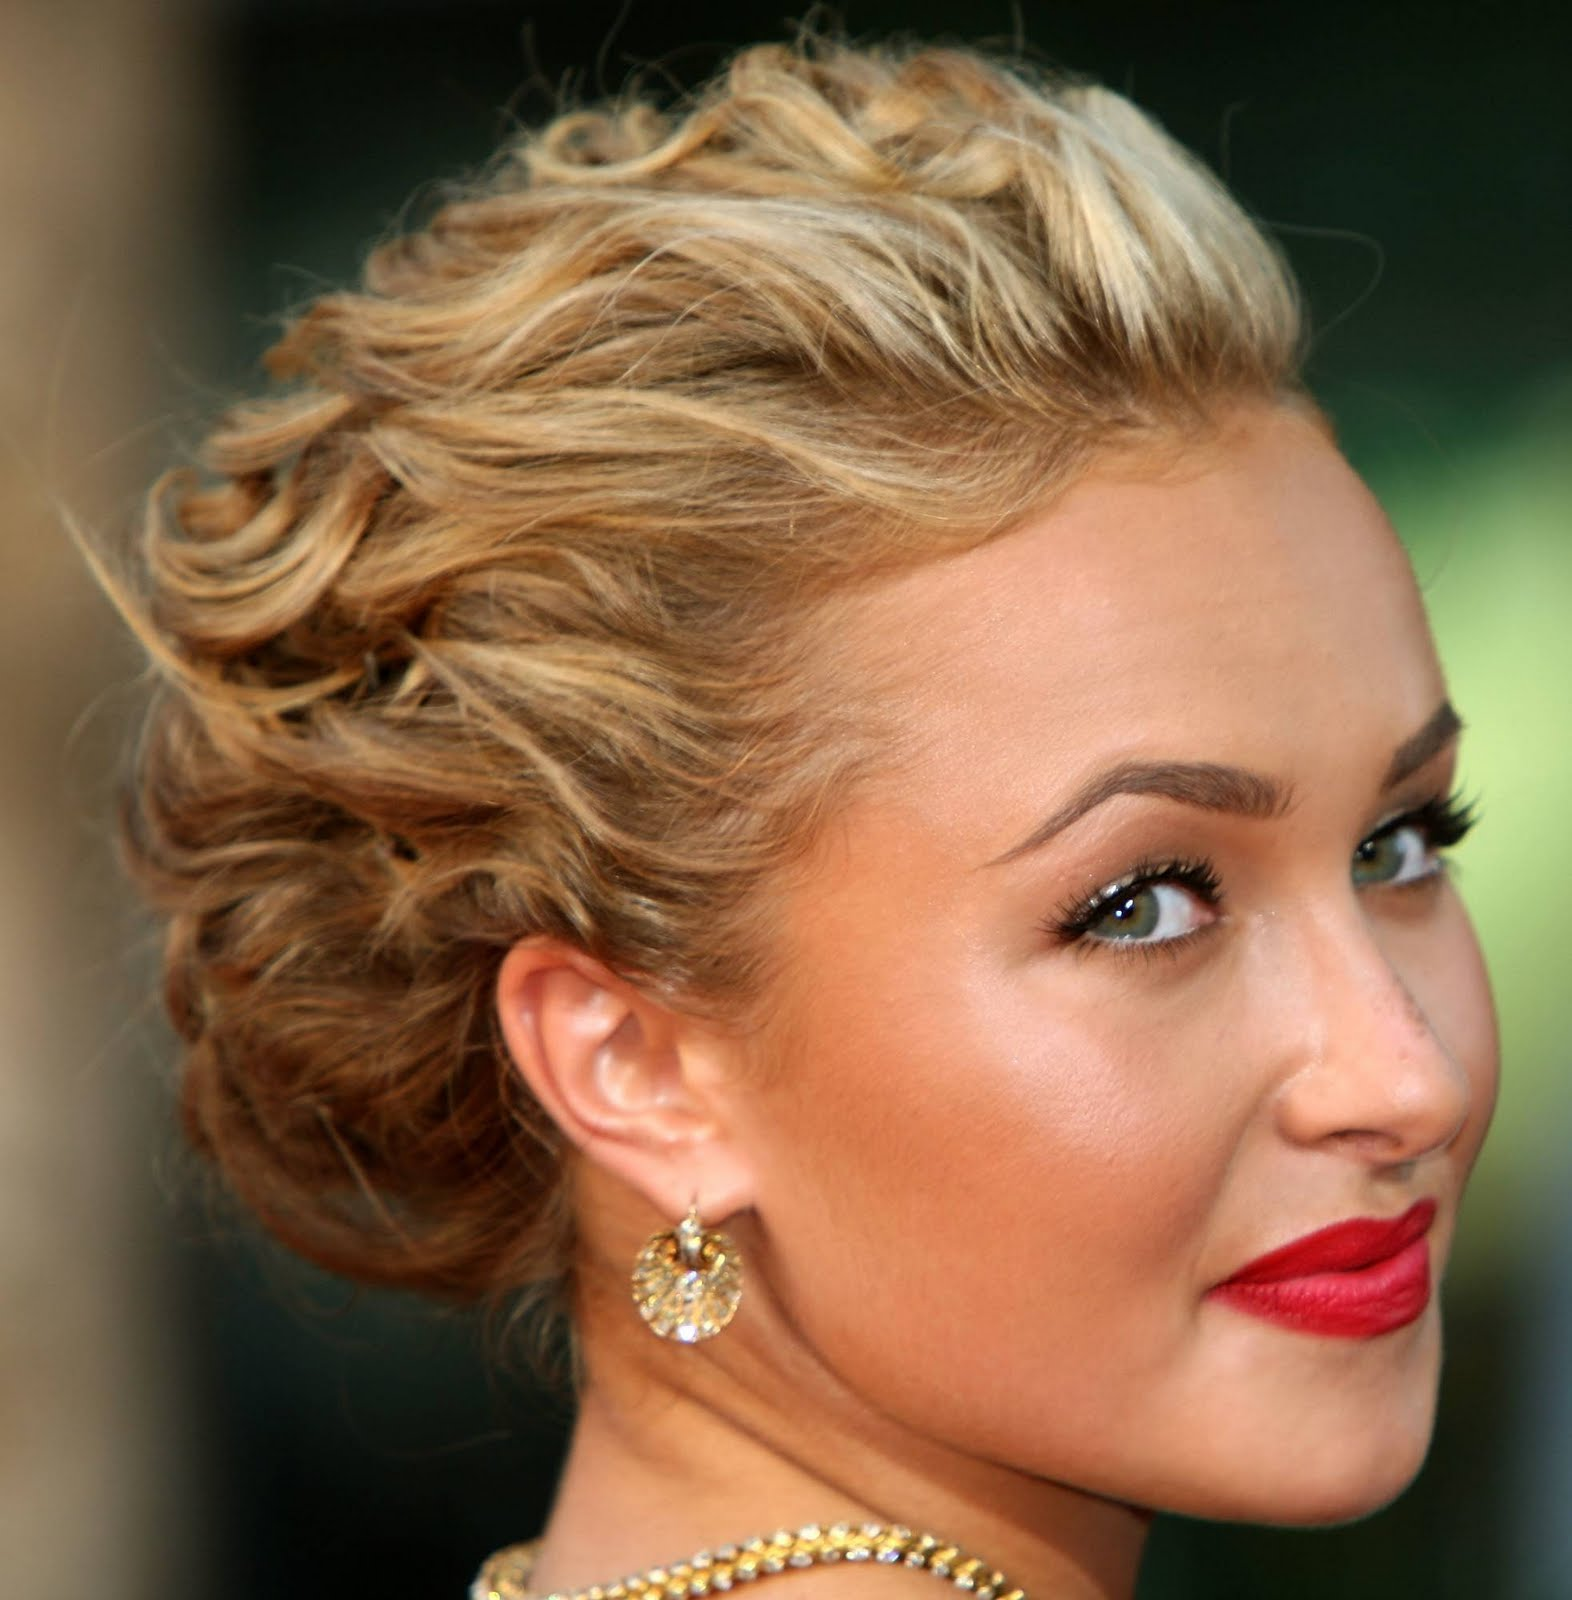 Naturally curly hair updos 100 images best 25 wedding naturally curly hair updos naturally curly hair updos modern hairstyles in the us photo pmusecretfo Images